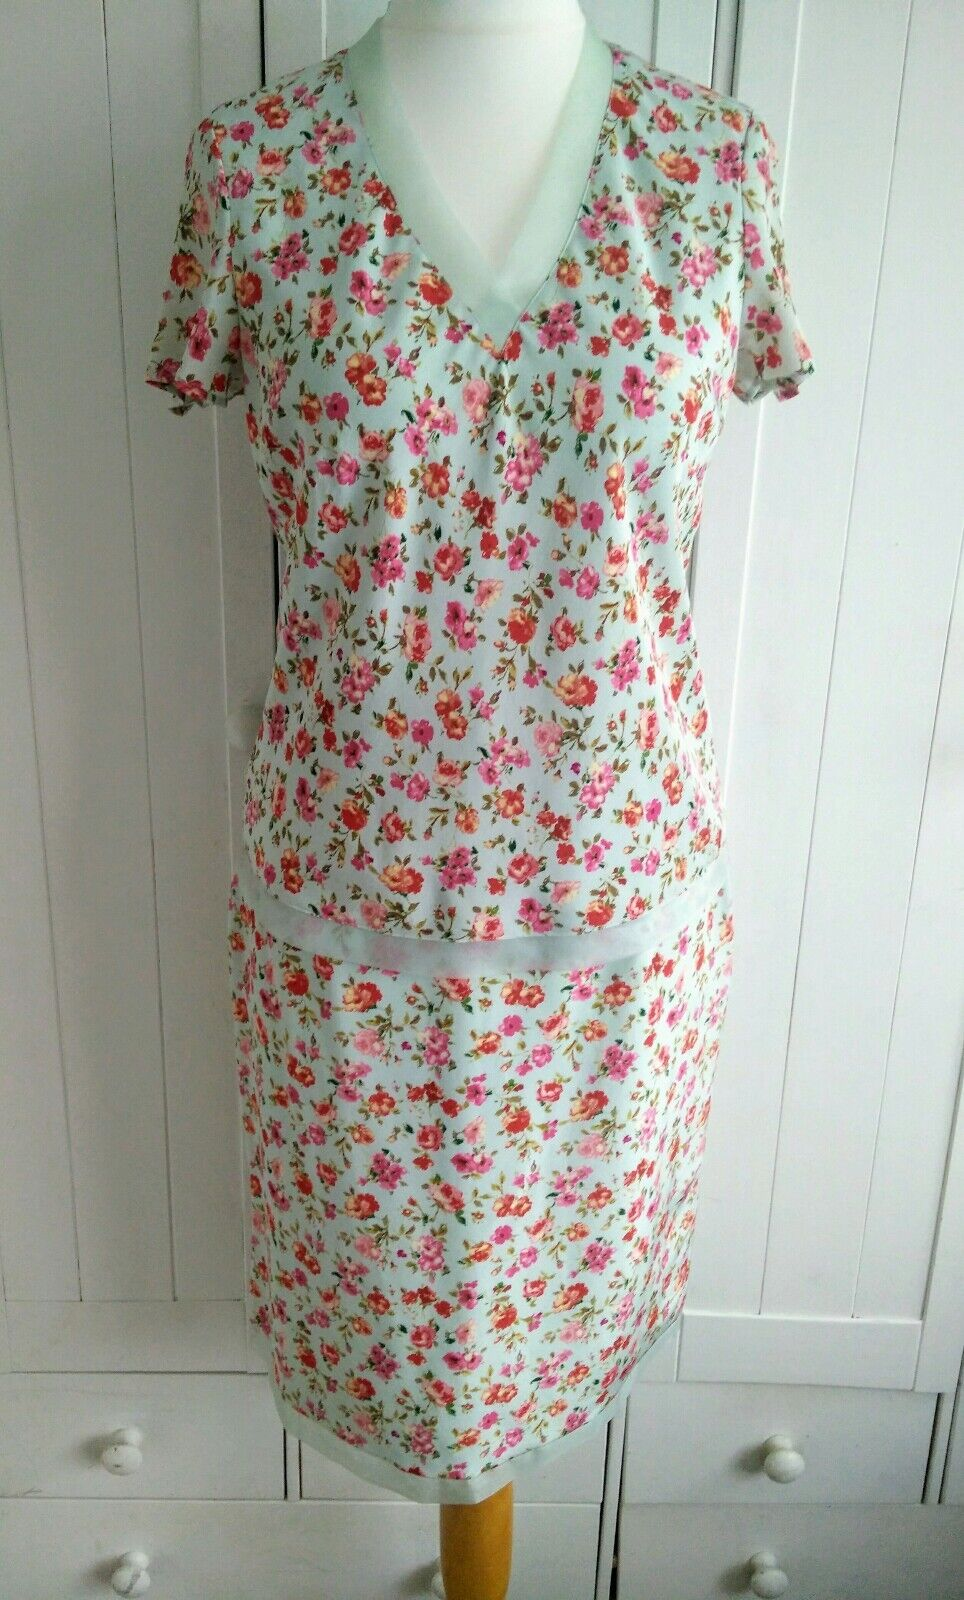 Laura Ashley Silk Green Floral Skirt & Top Outfit Size 12